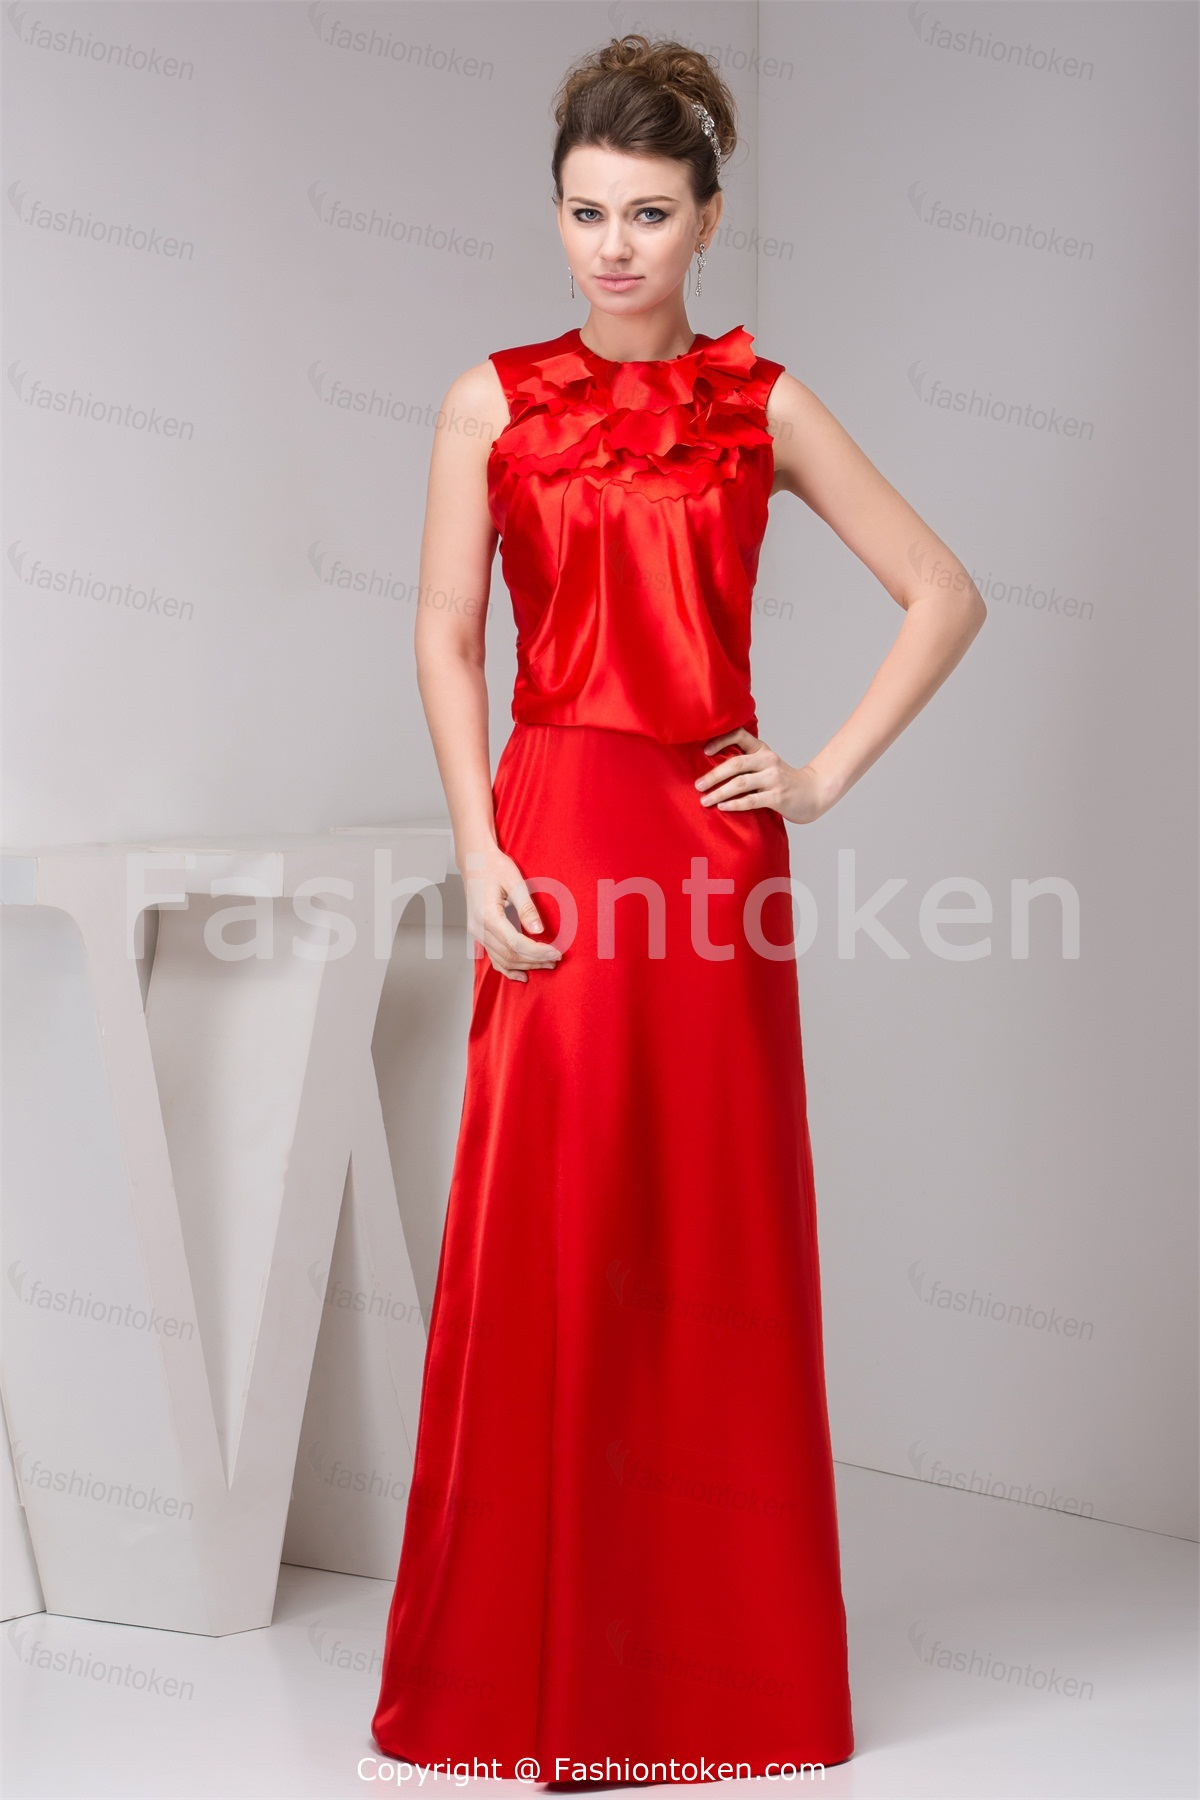 Gorgeous photos of red wedding guest dresses cherry marry for Dress for a spring wedding